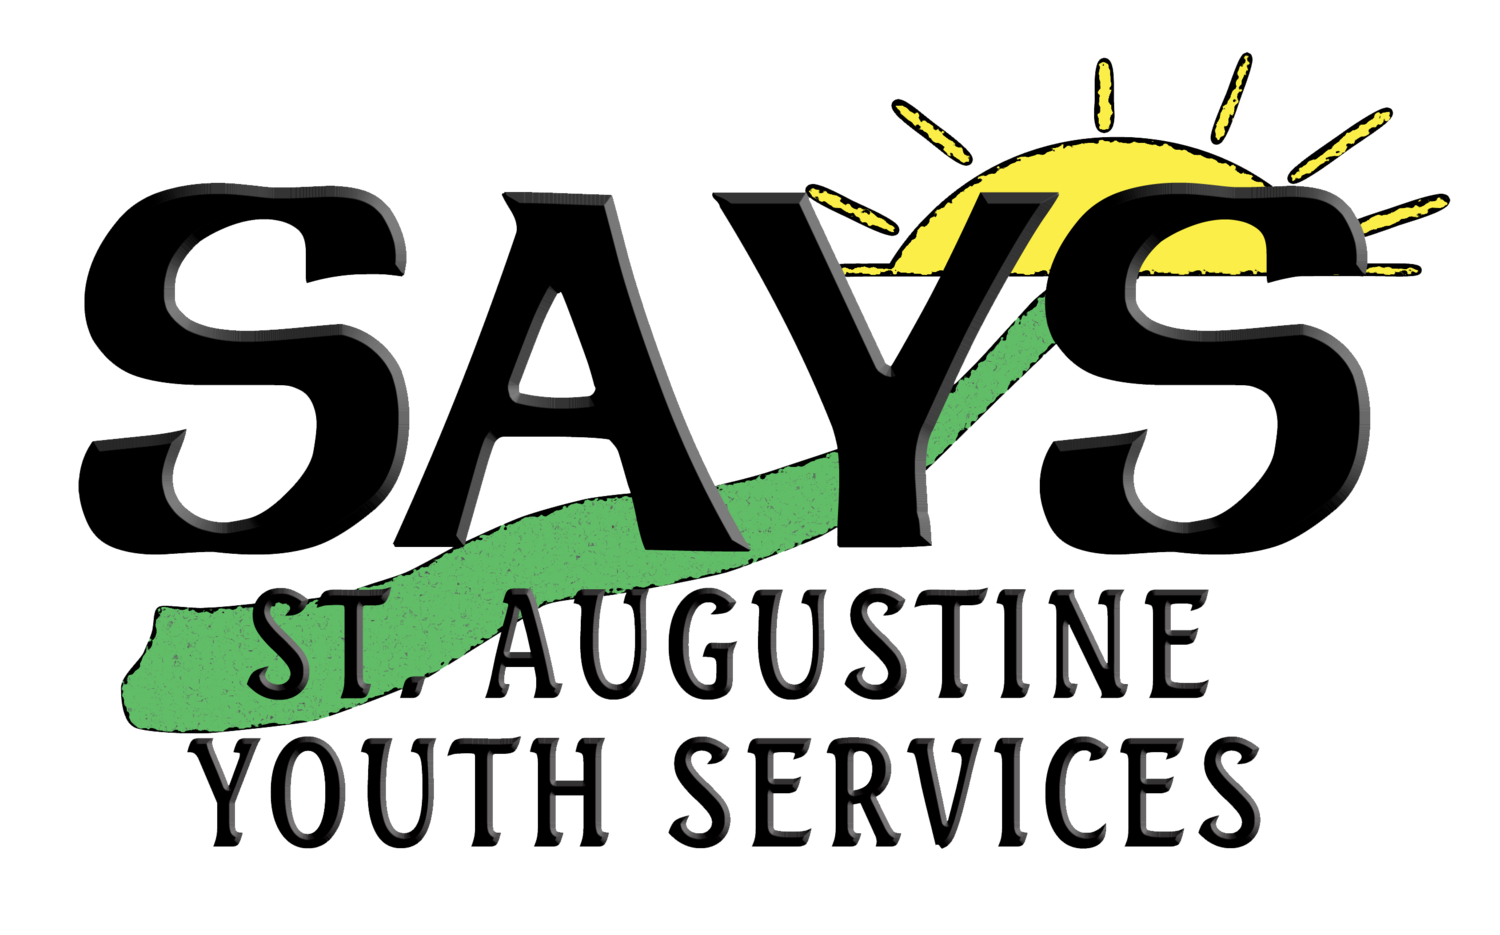 St. Augustine Youth Services